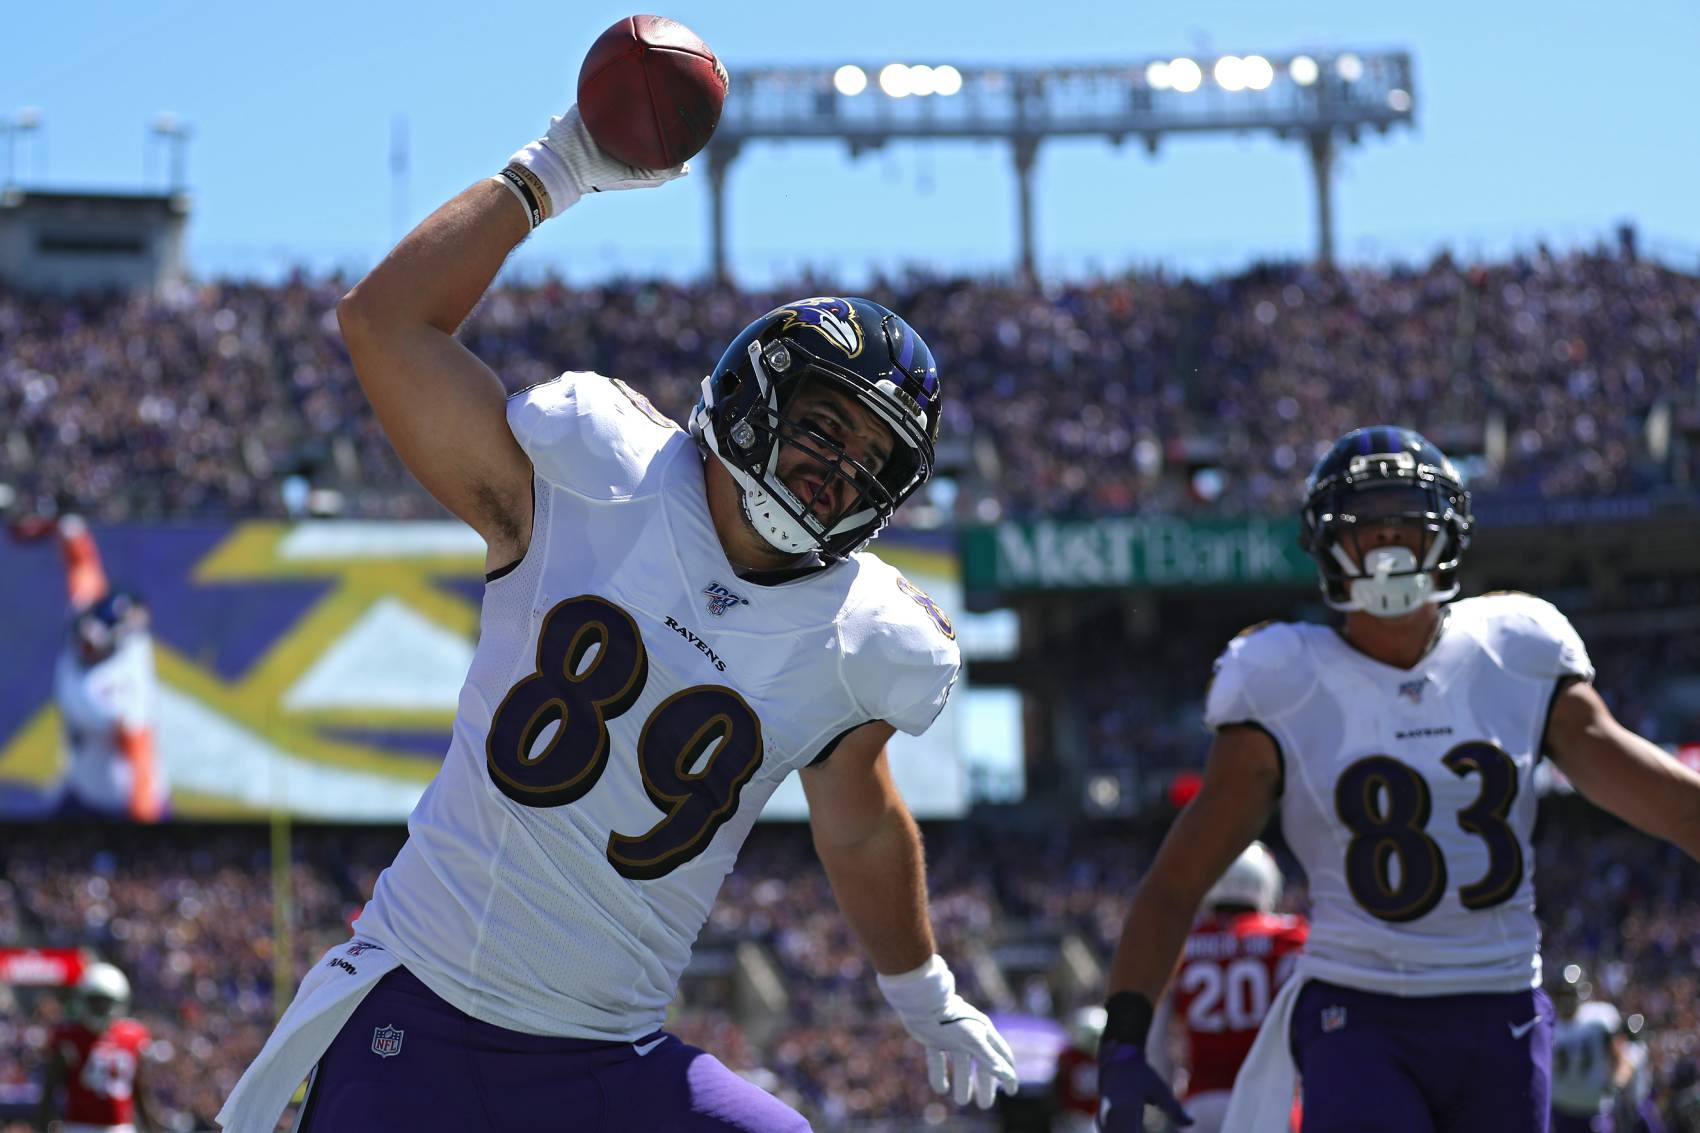 Baltimore Ravens tight end Mark Andrews intends to play in 2020 despite being considered high-risk for COVID-19.